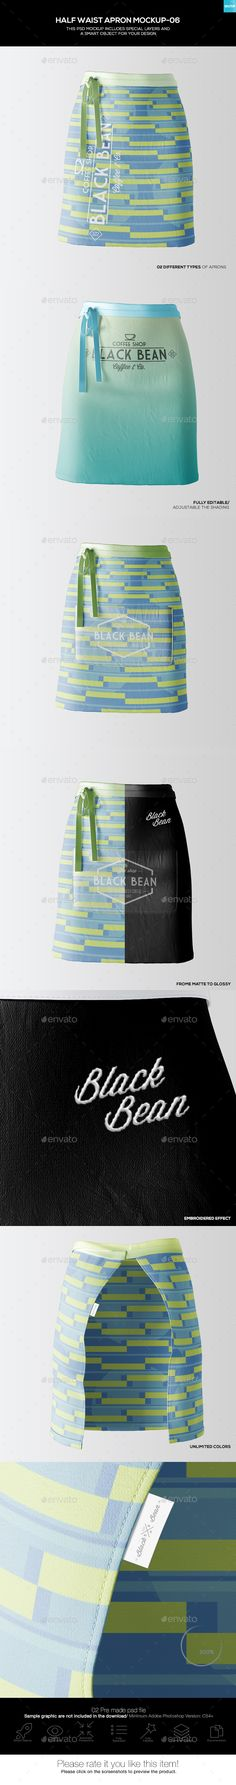 Half Waist #Apron #Mockup-06 - Miscellaneous Apparel Download here: https://graphicriver.net/item/half-waist-apron-mockup06/19478934?ref=alena994